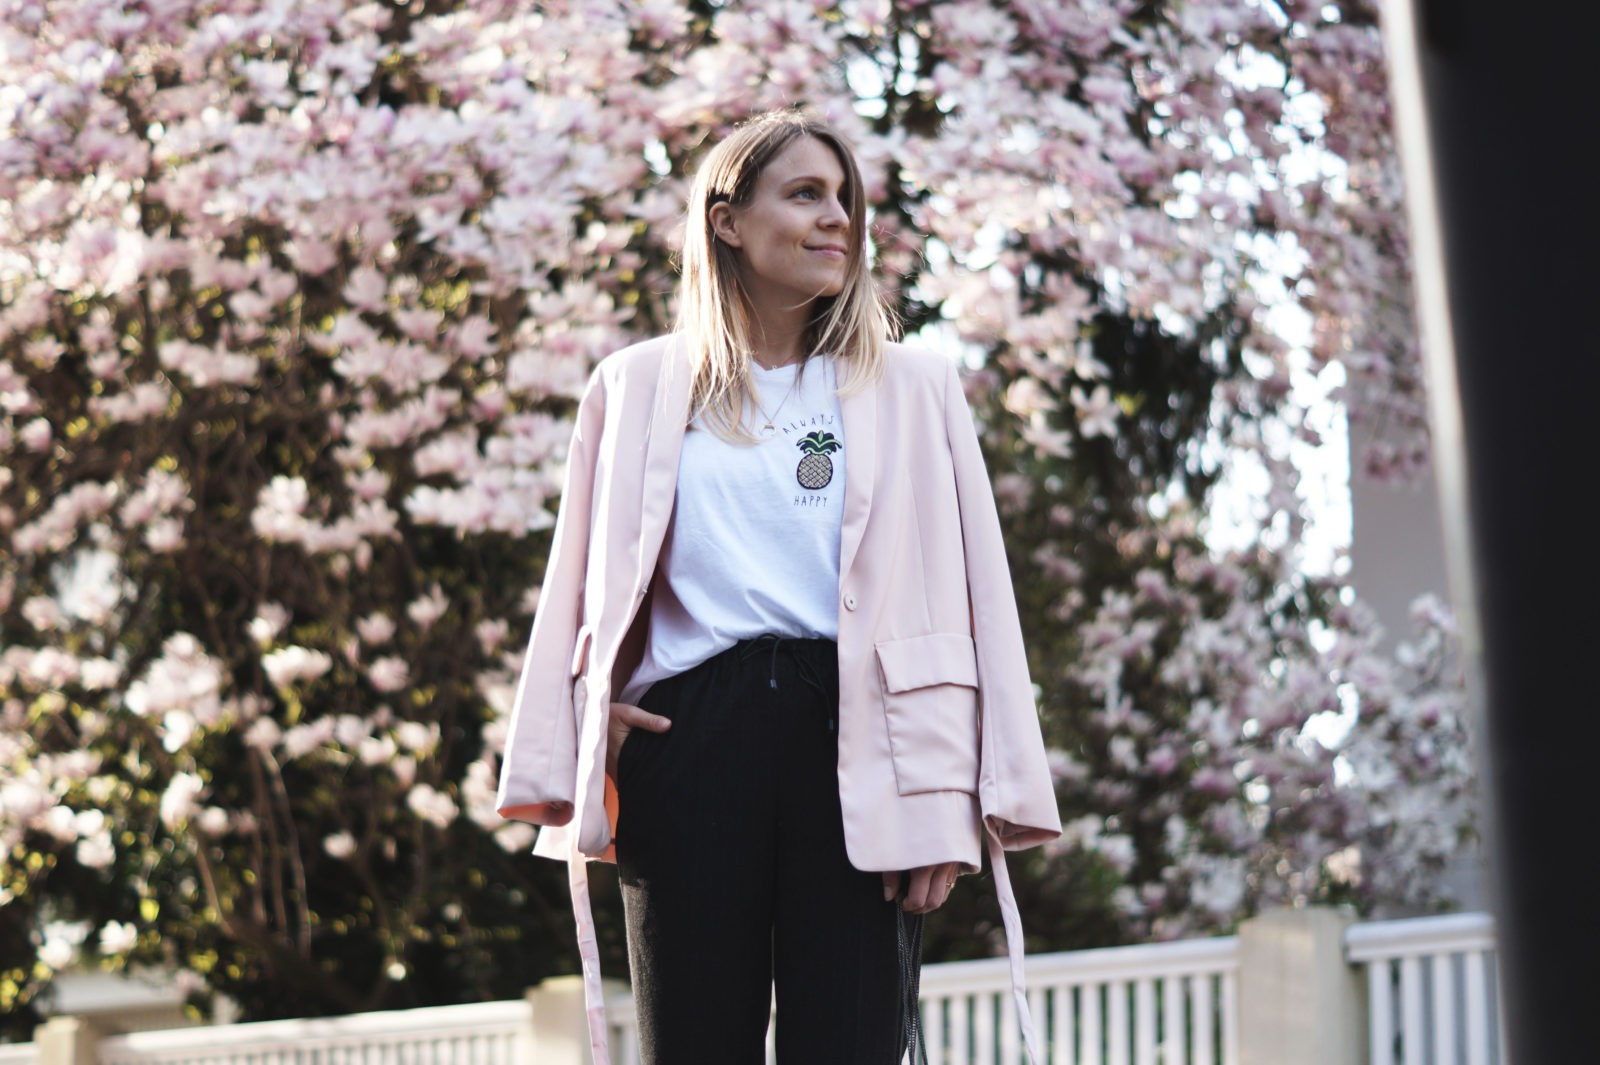 Pineapple Spring Look Always Be Happy Ananas Outfit Statement Shirt Frühling Magnolienbaum rosa Blazer Casual Chic Heidelberg Blossoms 10 Fakten über mich